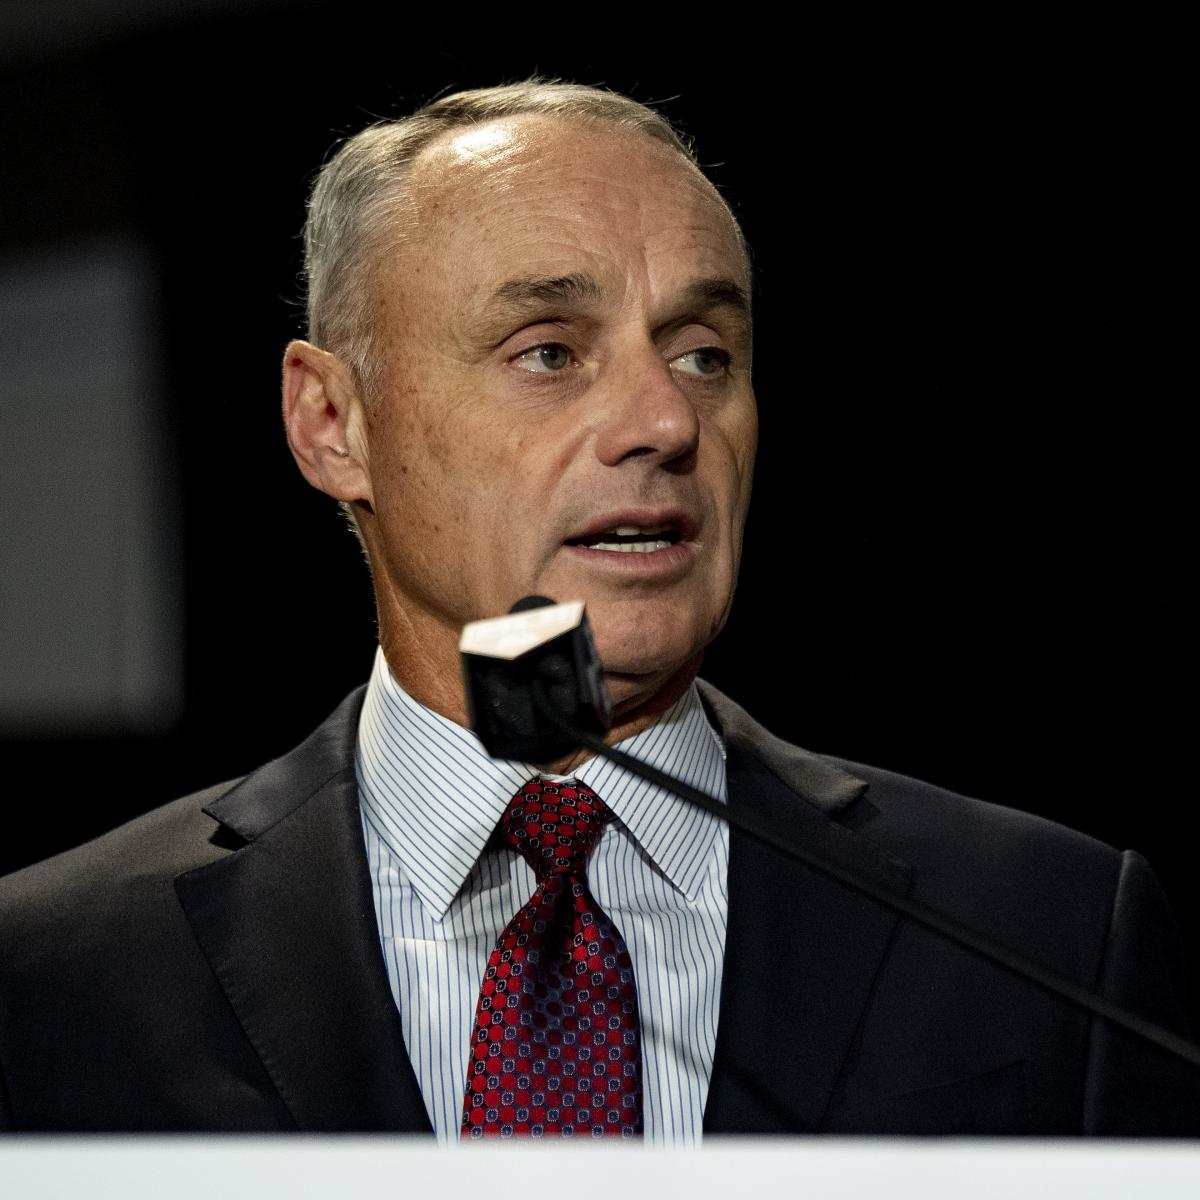 MLB Commish Manfred Explains Why Astros Players Weren't Punished for Cheating